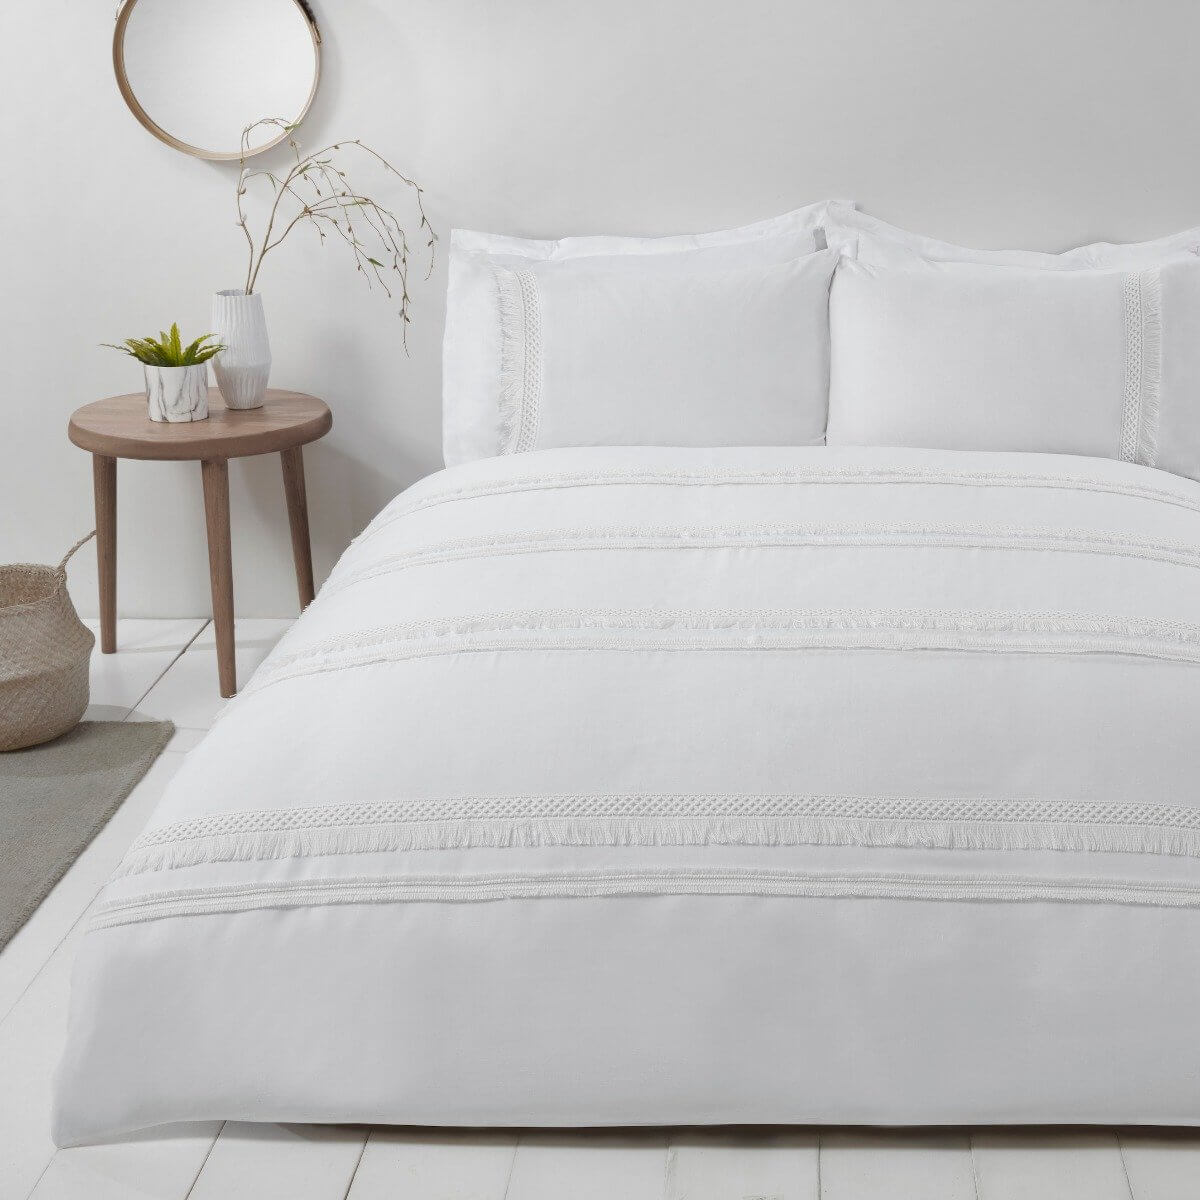 Delicate Tassel Bedding - Luxury Duvet Cover and Pillowcase Set White